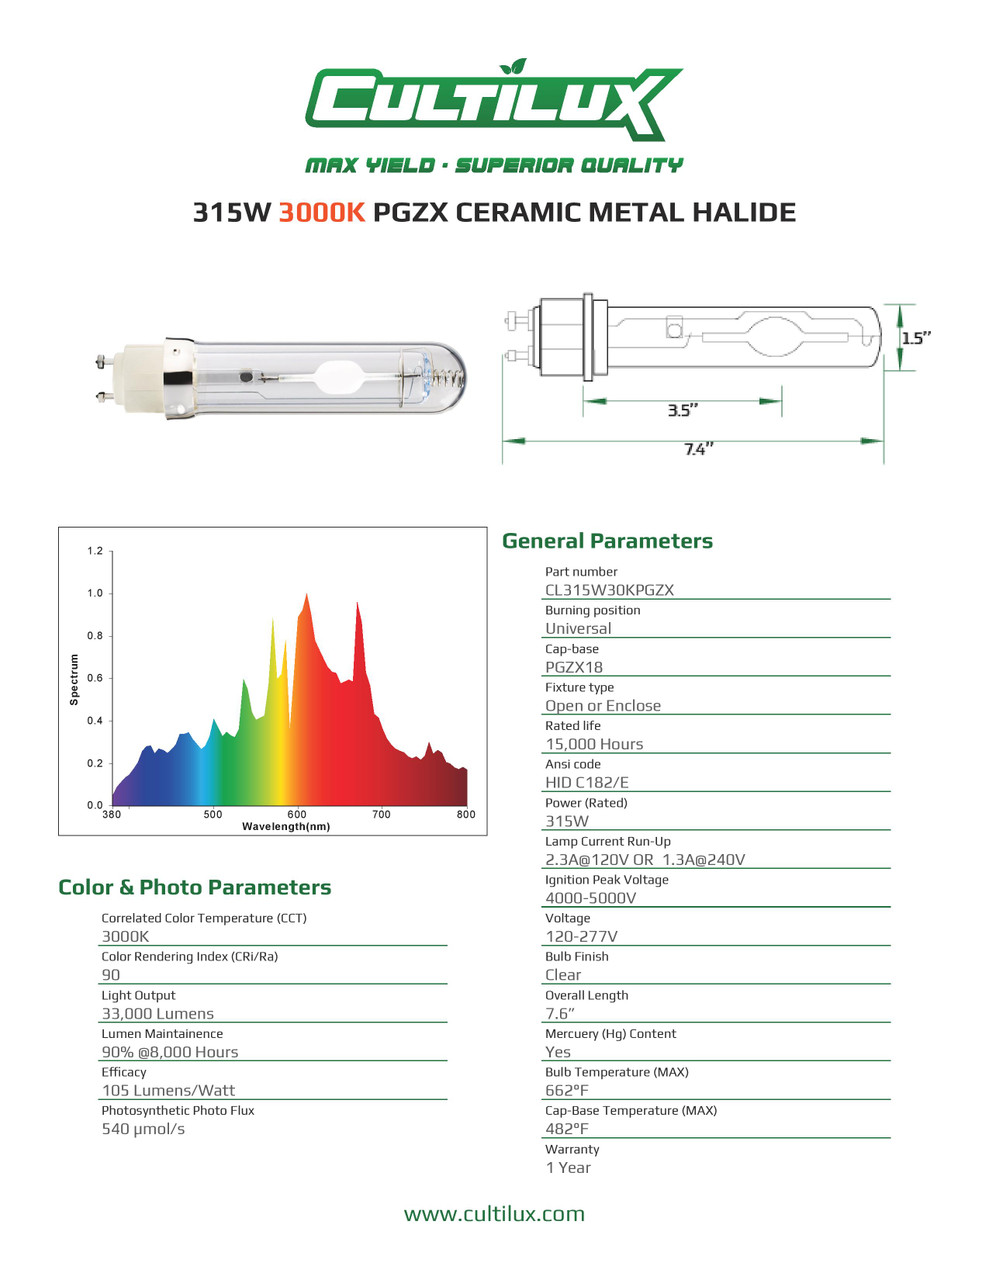 Cultilux CMH 315W 3000K + UV Grow Lamp